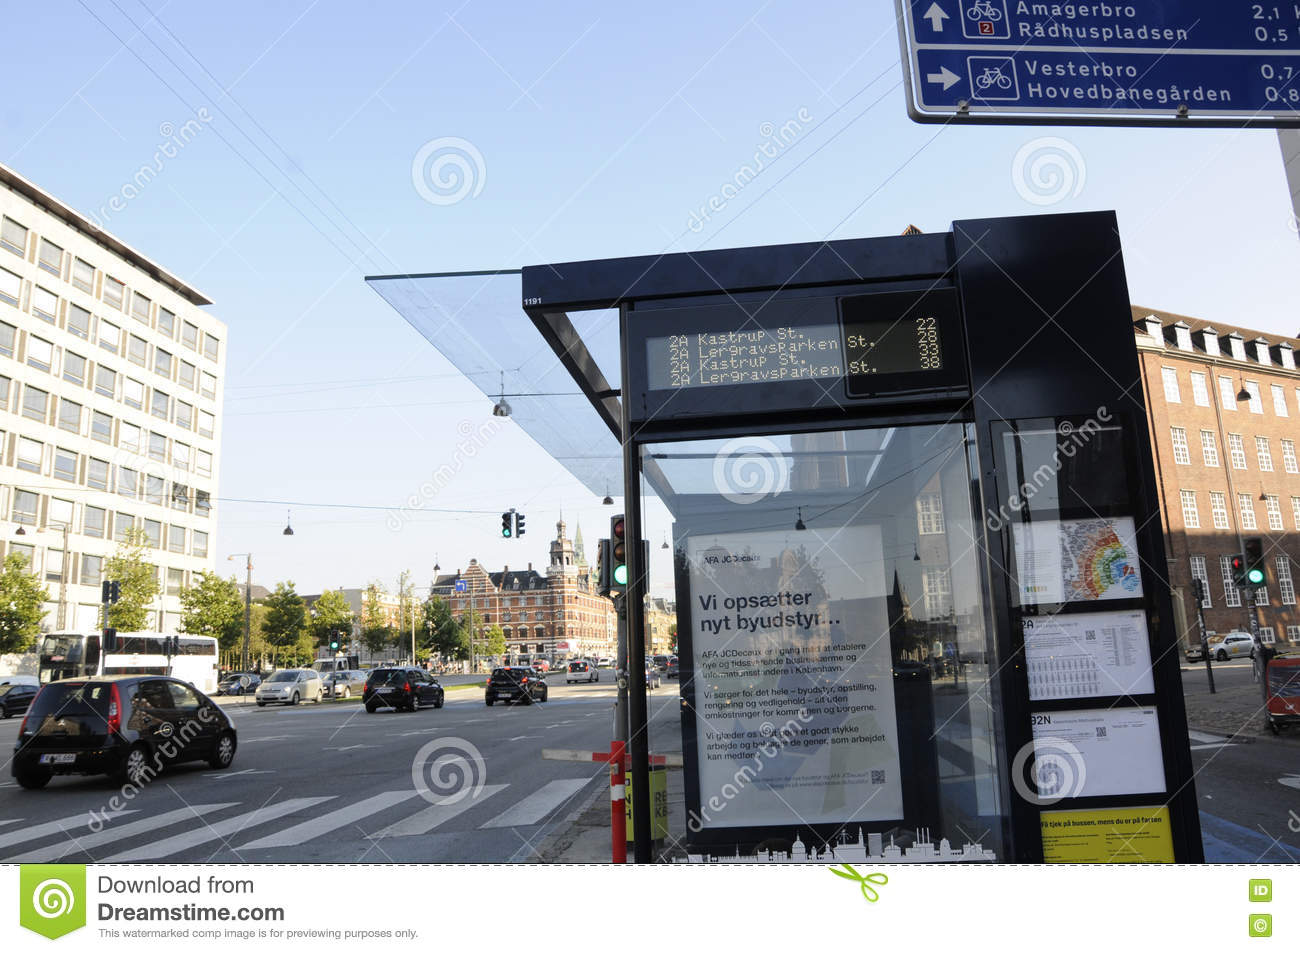 09 September 2016- Timebale of buses for public service in Copenhagen /  Denmark / Photo.